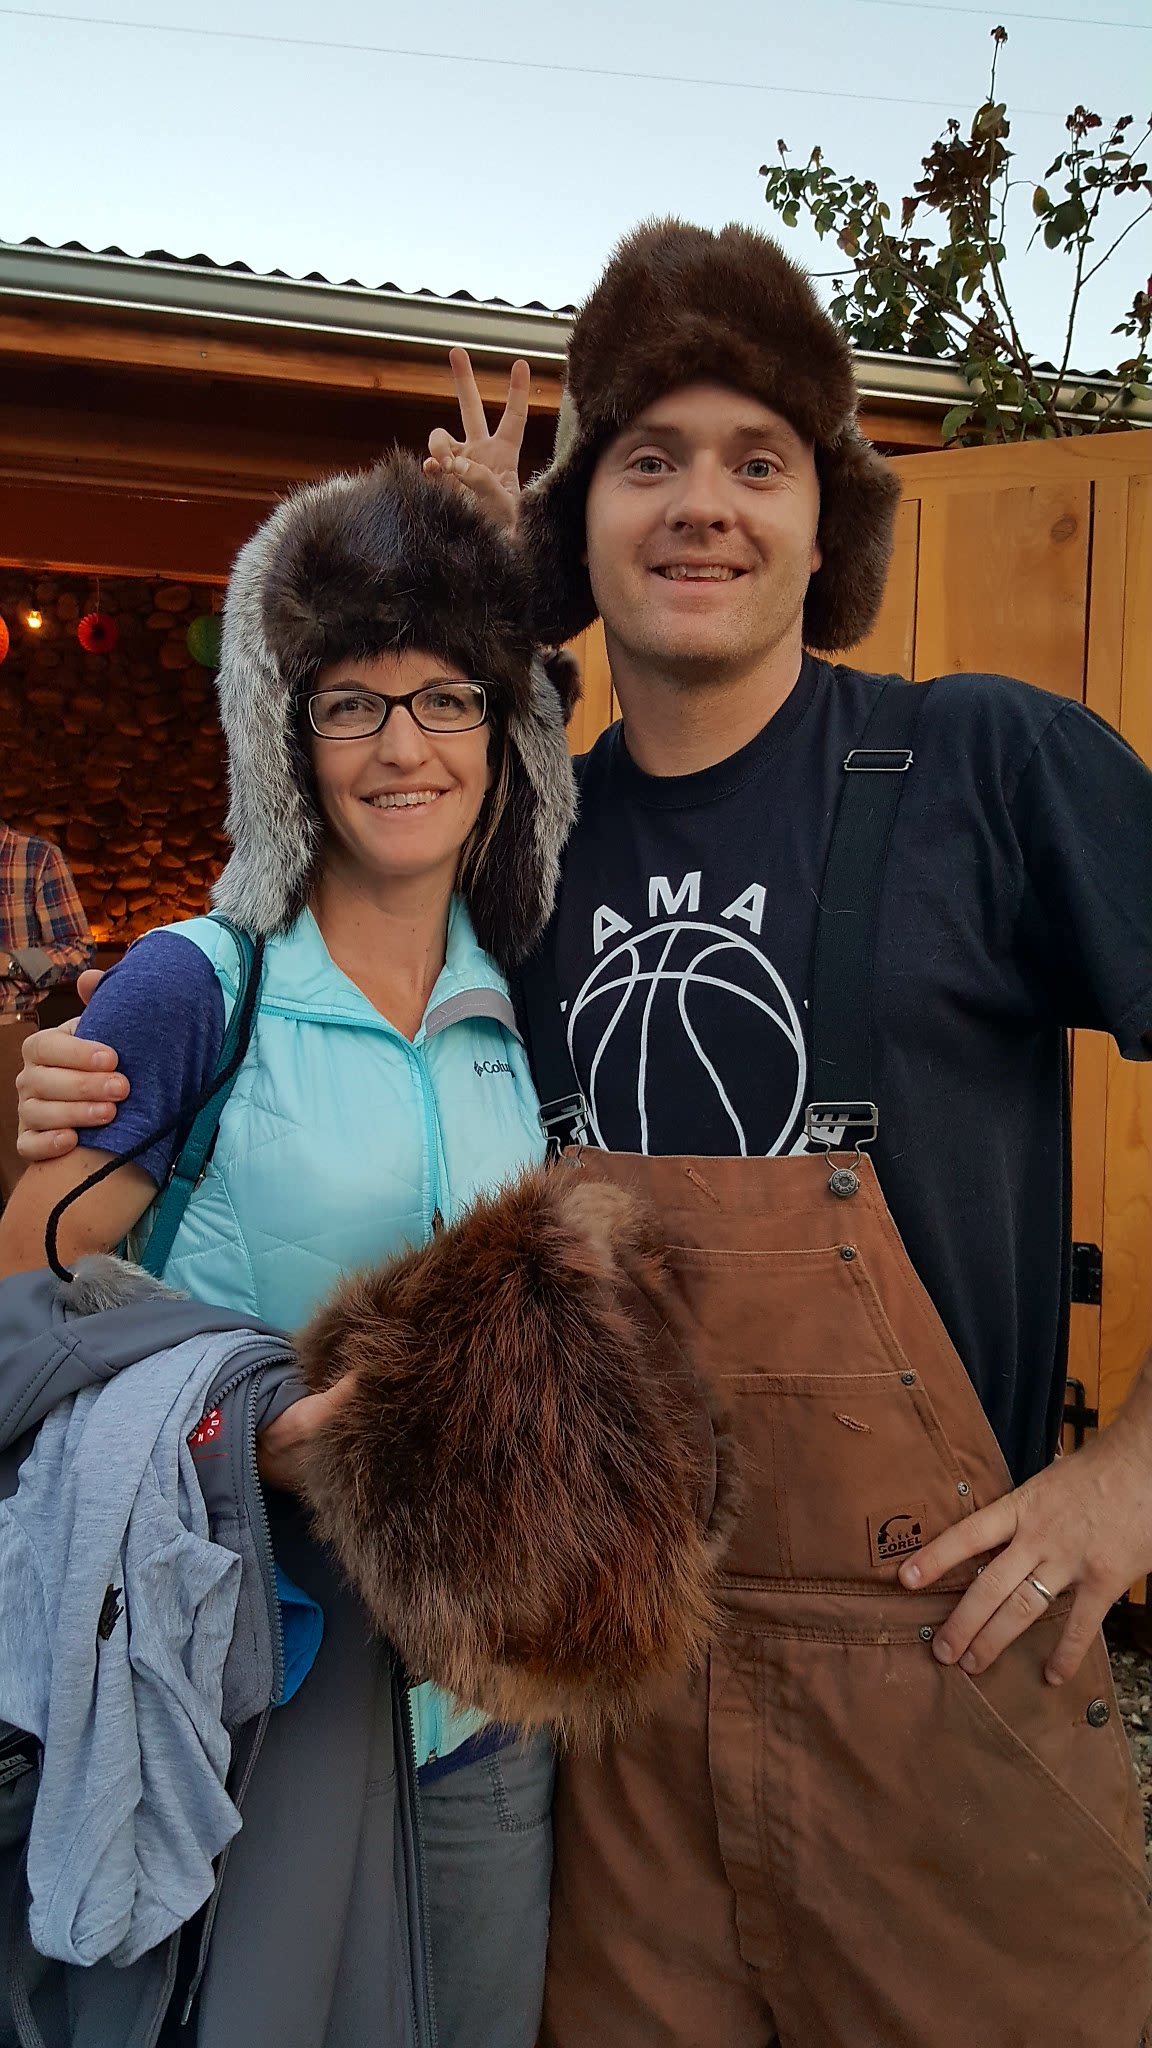 Tim & Jessica Weidmann bring a blast of cold from Alaska to this year's Pray for Snow Party.  Congratulations, Tim on Best Dressed.  Nice work on those hand made pelt hats and mittens, Jessica!  With all the snow expected this epic 2016/17 season, you'll need 'em!